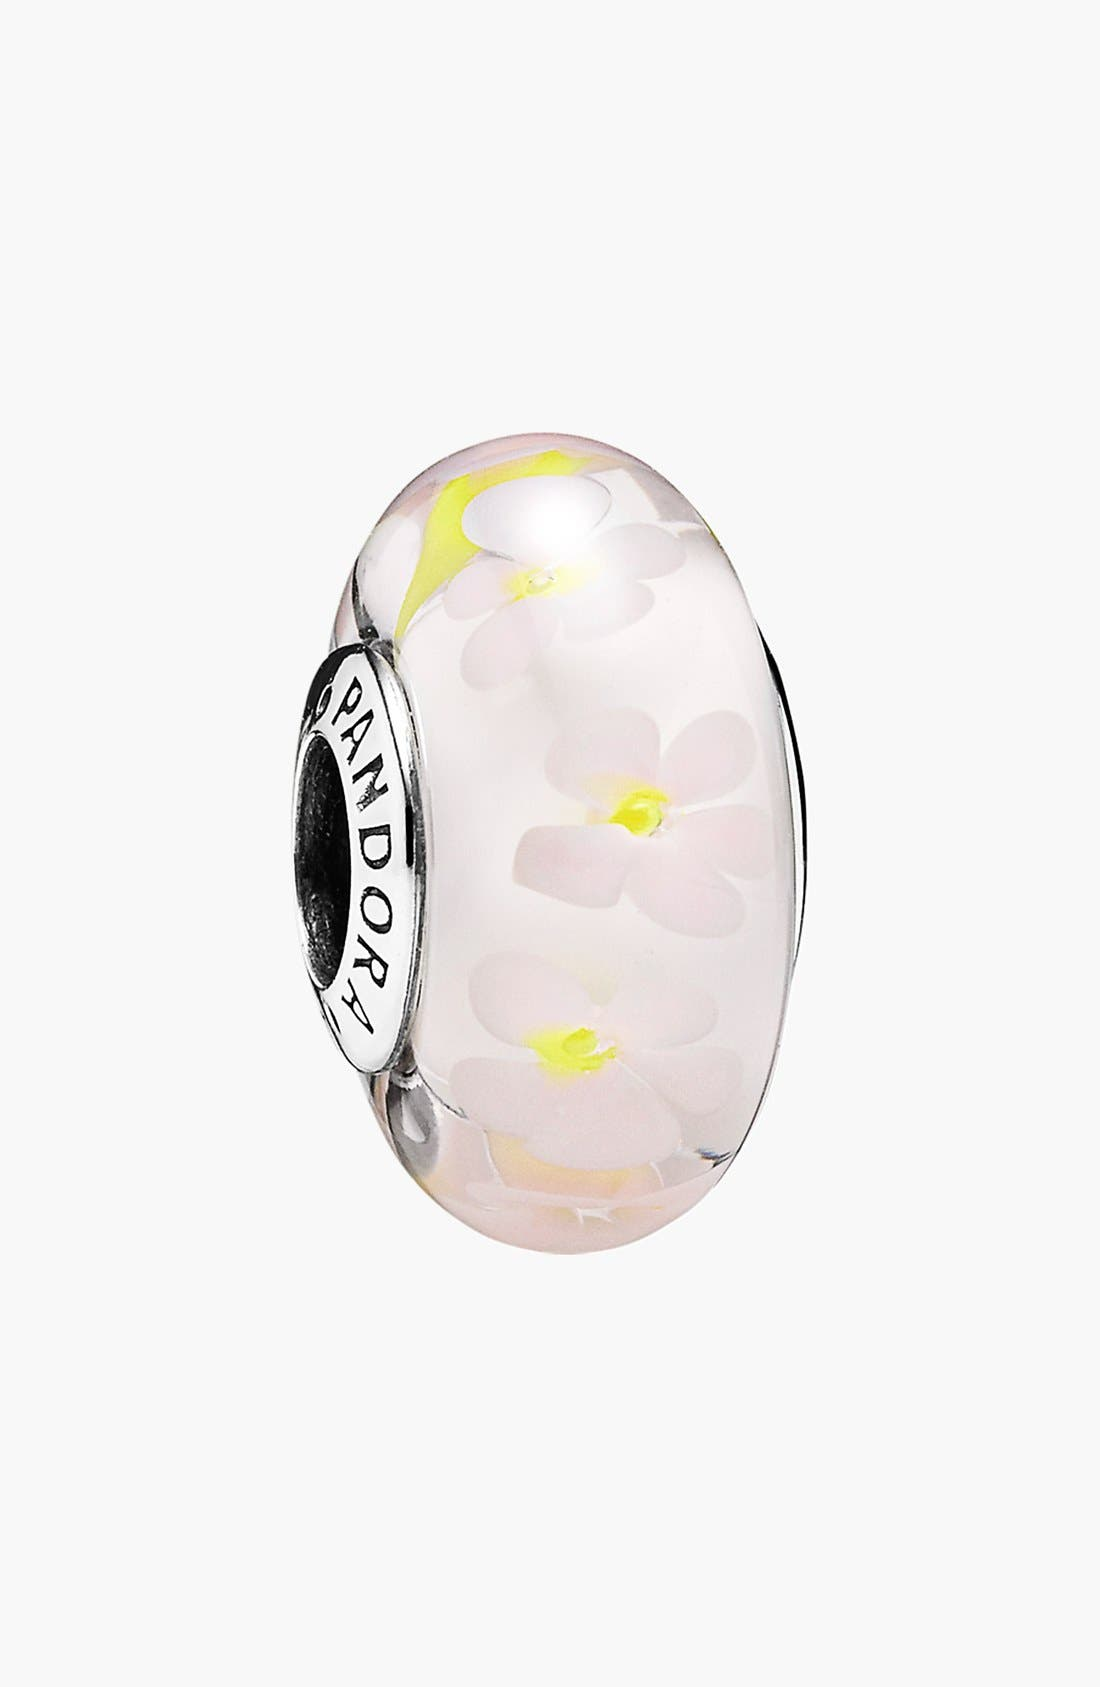 Main Image - PANDORA 'Field of Daisies' Murano Glass Bead Charm